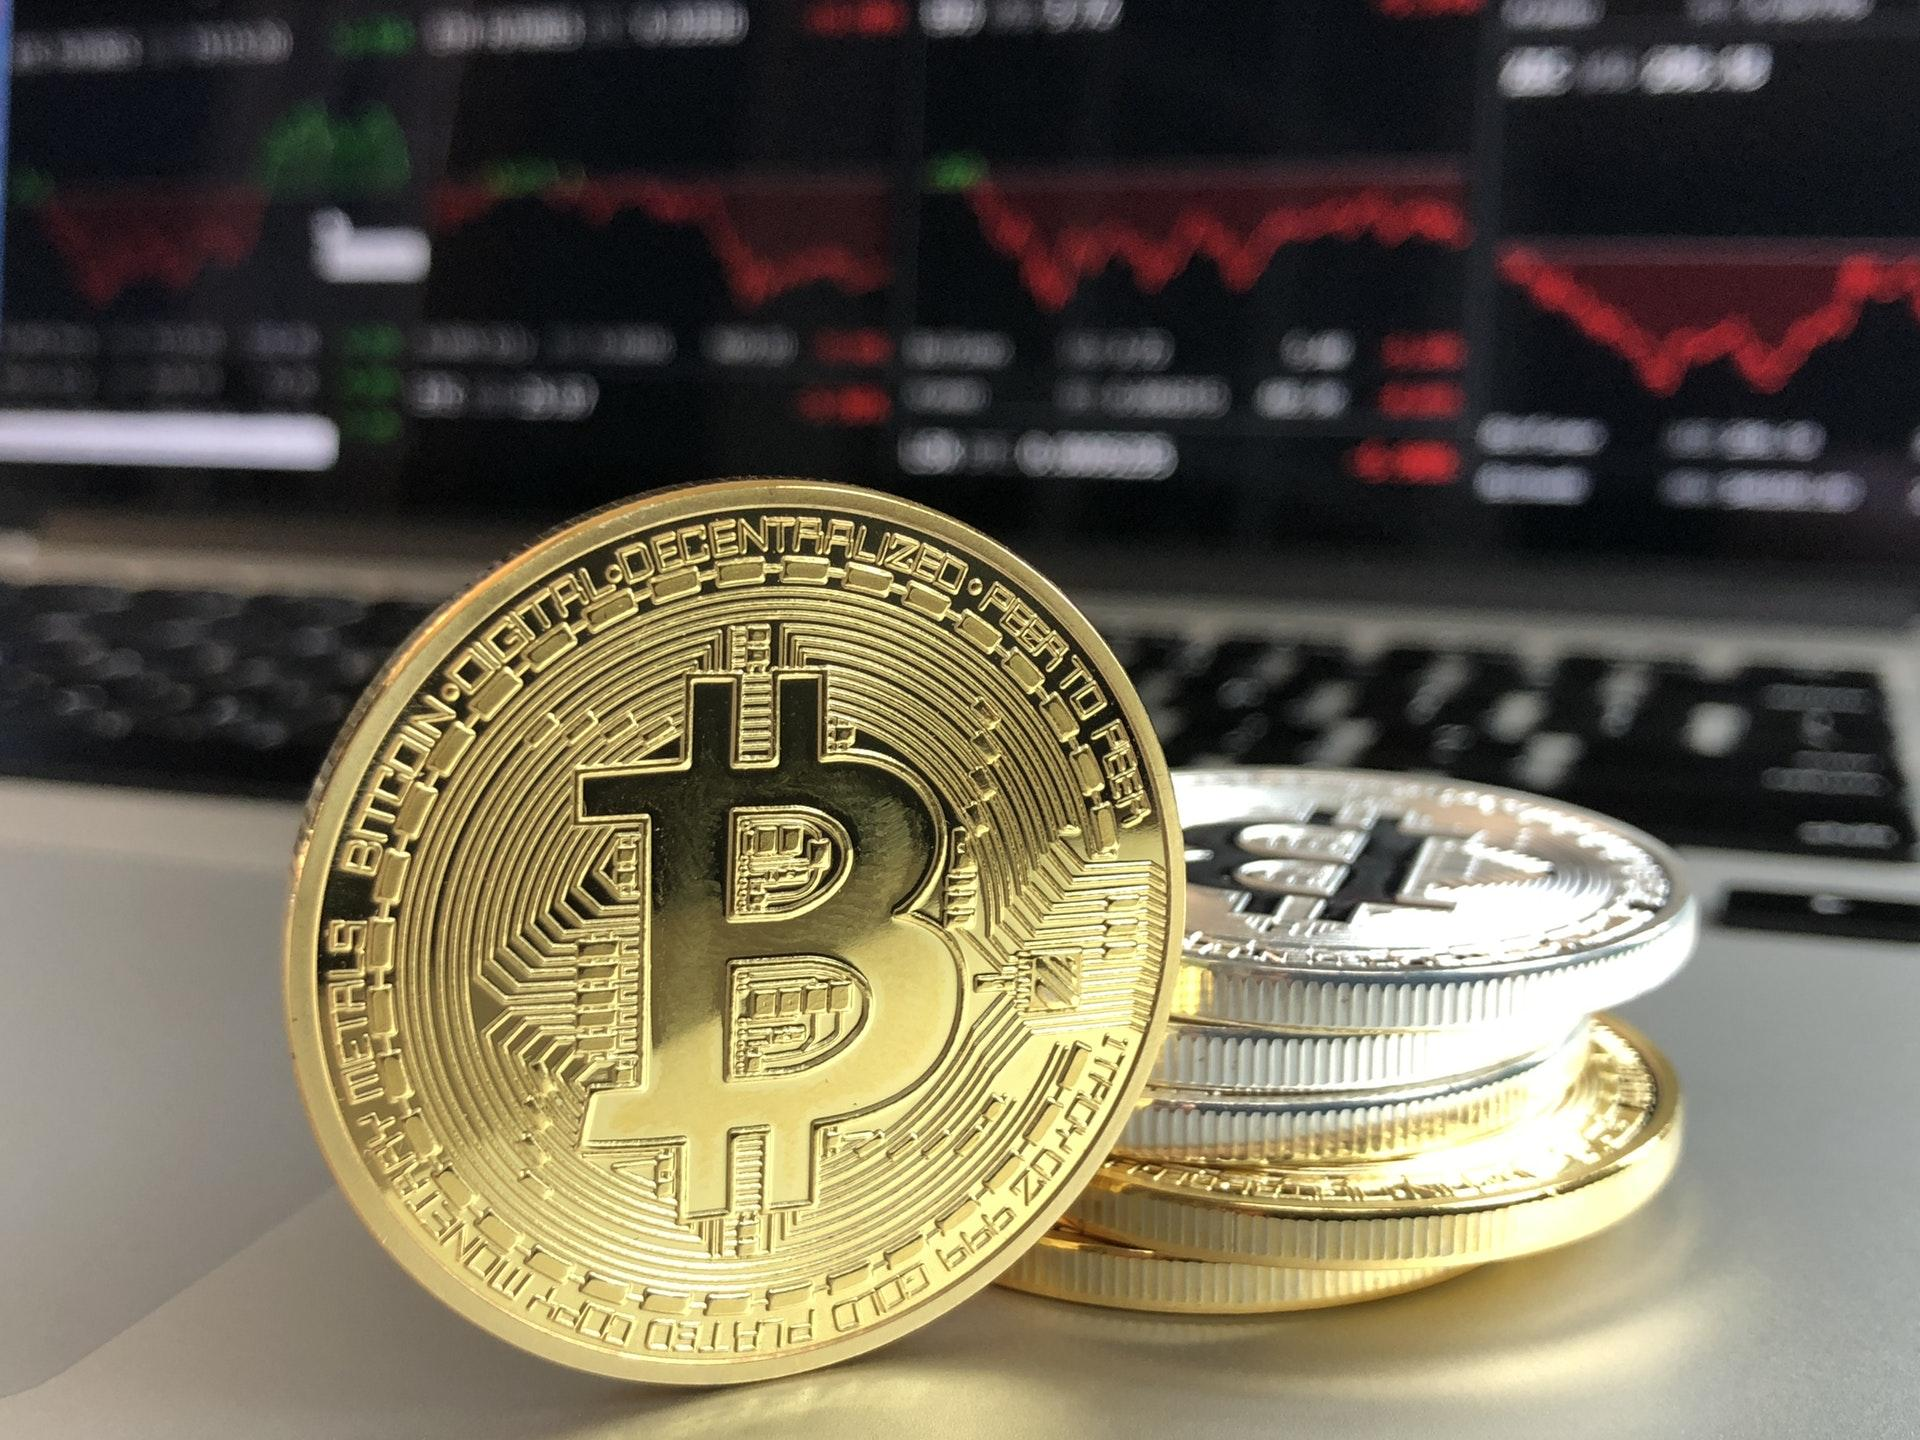 Cryptocurrency bitcoins and how to buy bitcoin with square cash euro yen etc for know more about it then follow this link cryptocurrency bitcoins and how to buy bitcoin with square cash ccuart Gallery